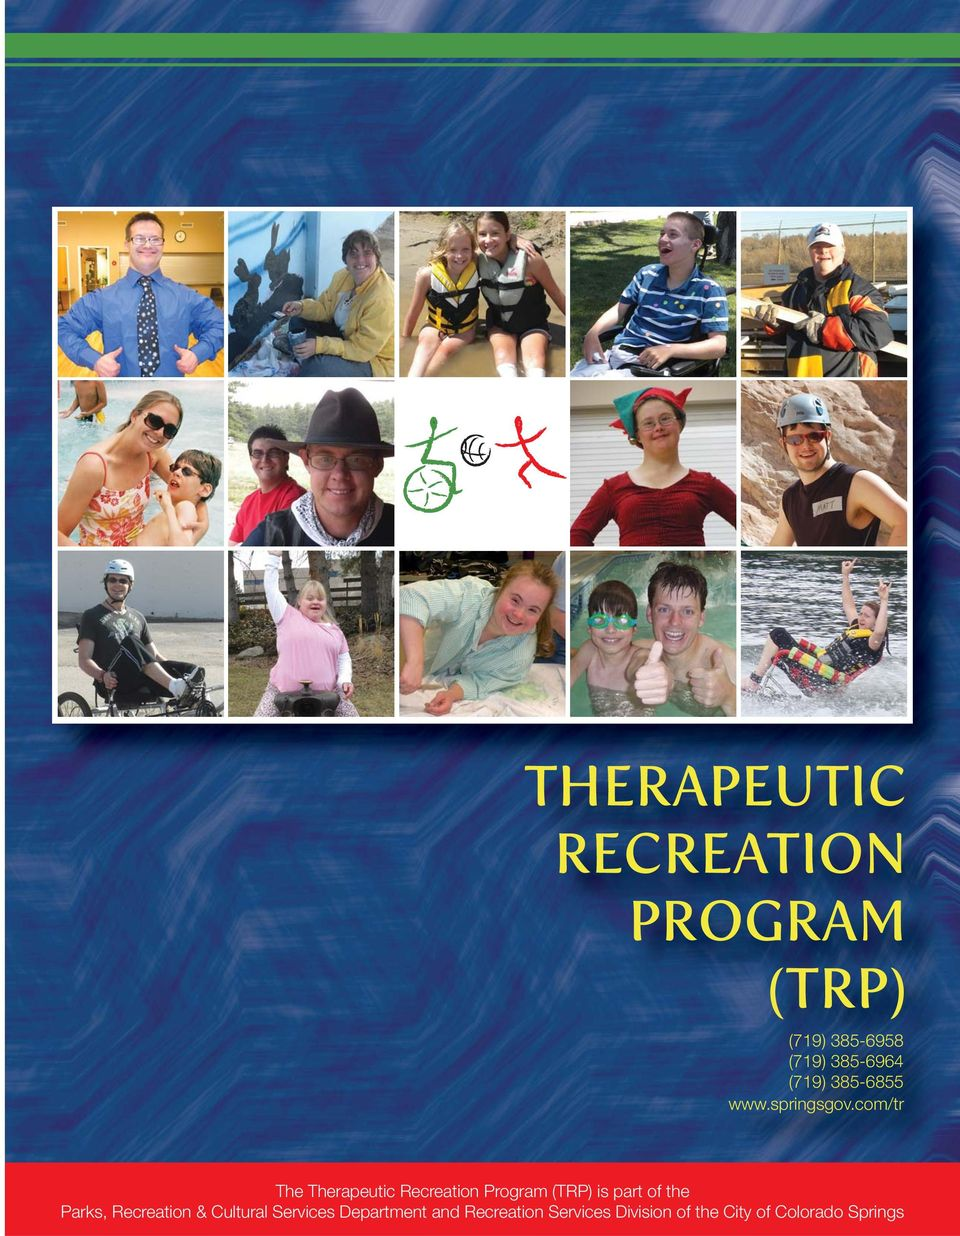 com/tr The Therapeutic Recreation Program (TRP) is part of the